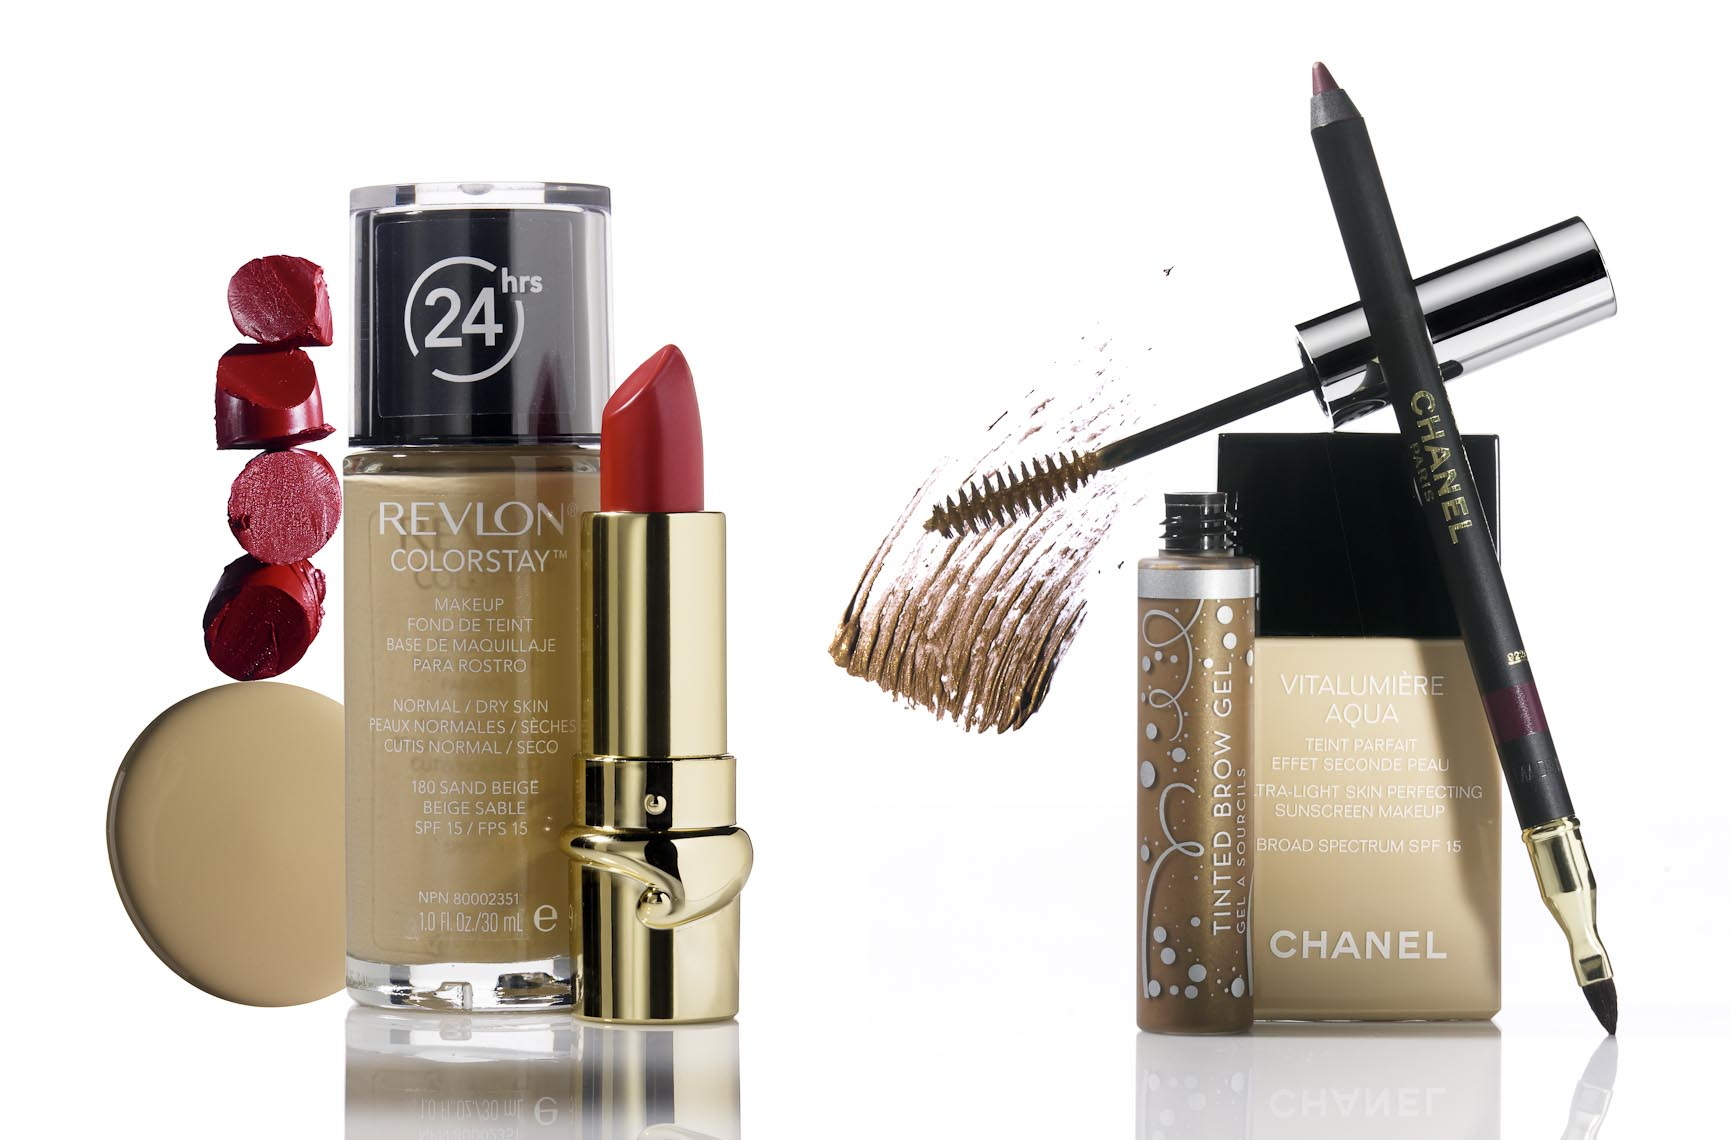 Cosmetics, Revlon and Chanel Beauty Products - Mike Lorrig